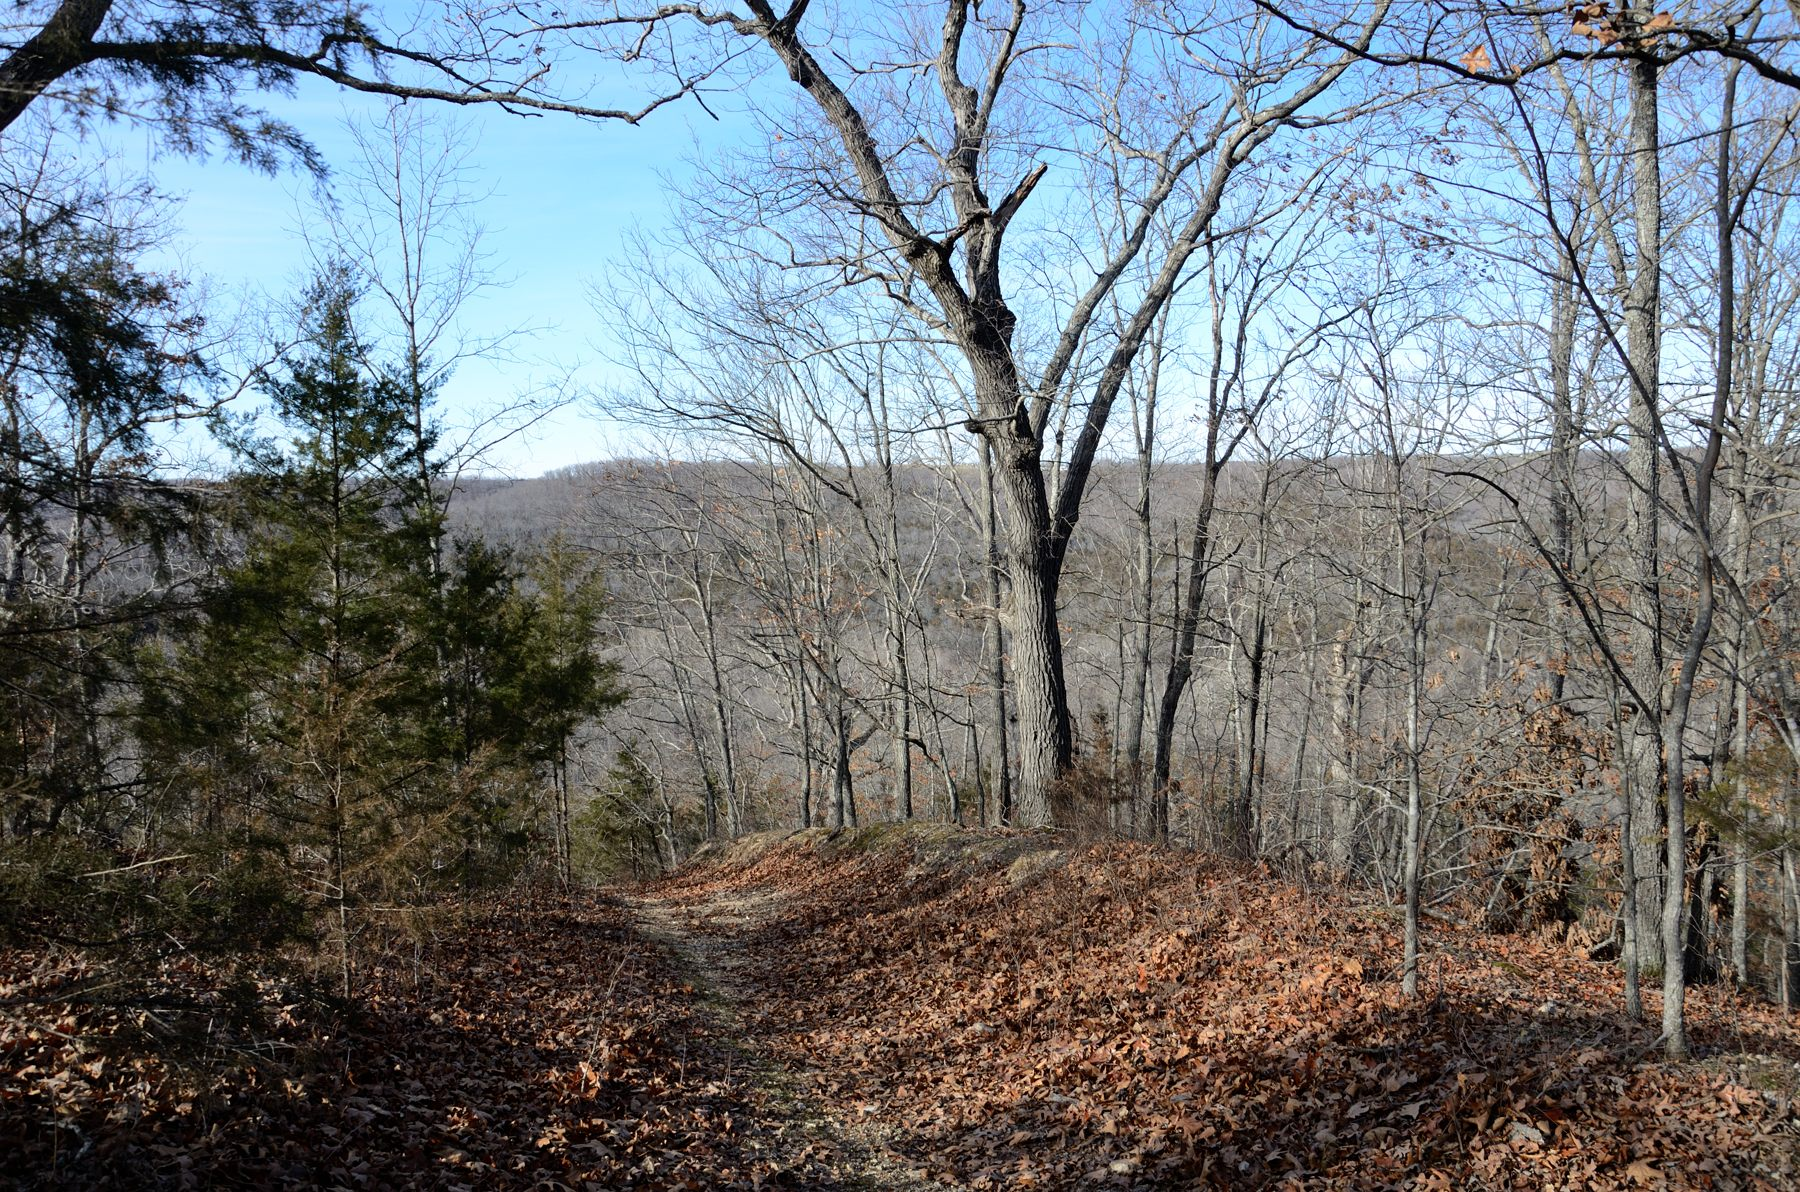 Winter Hike on the Silver Trail at Busiek